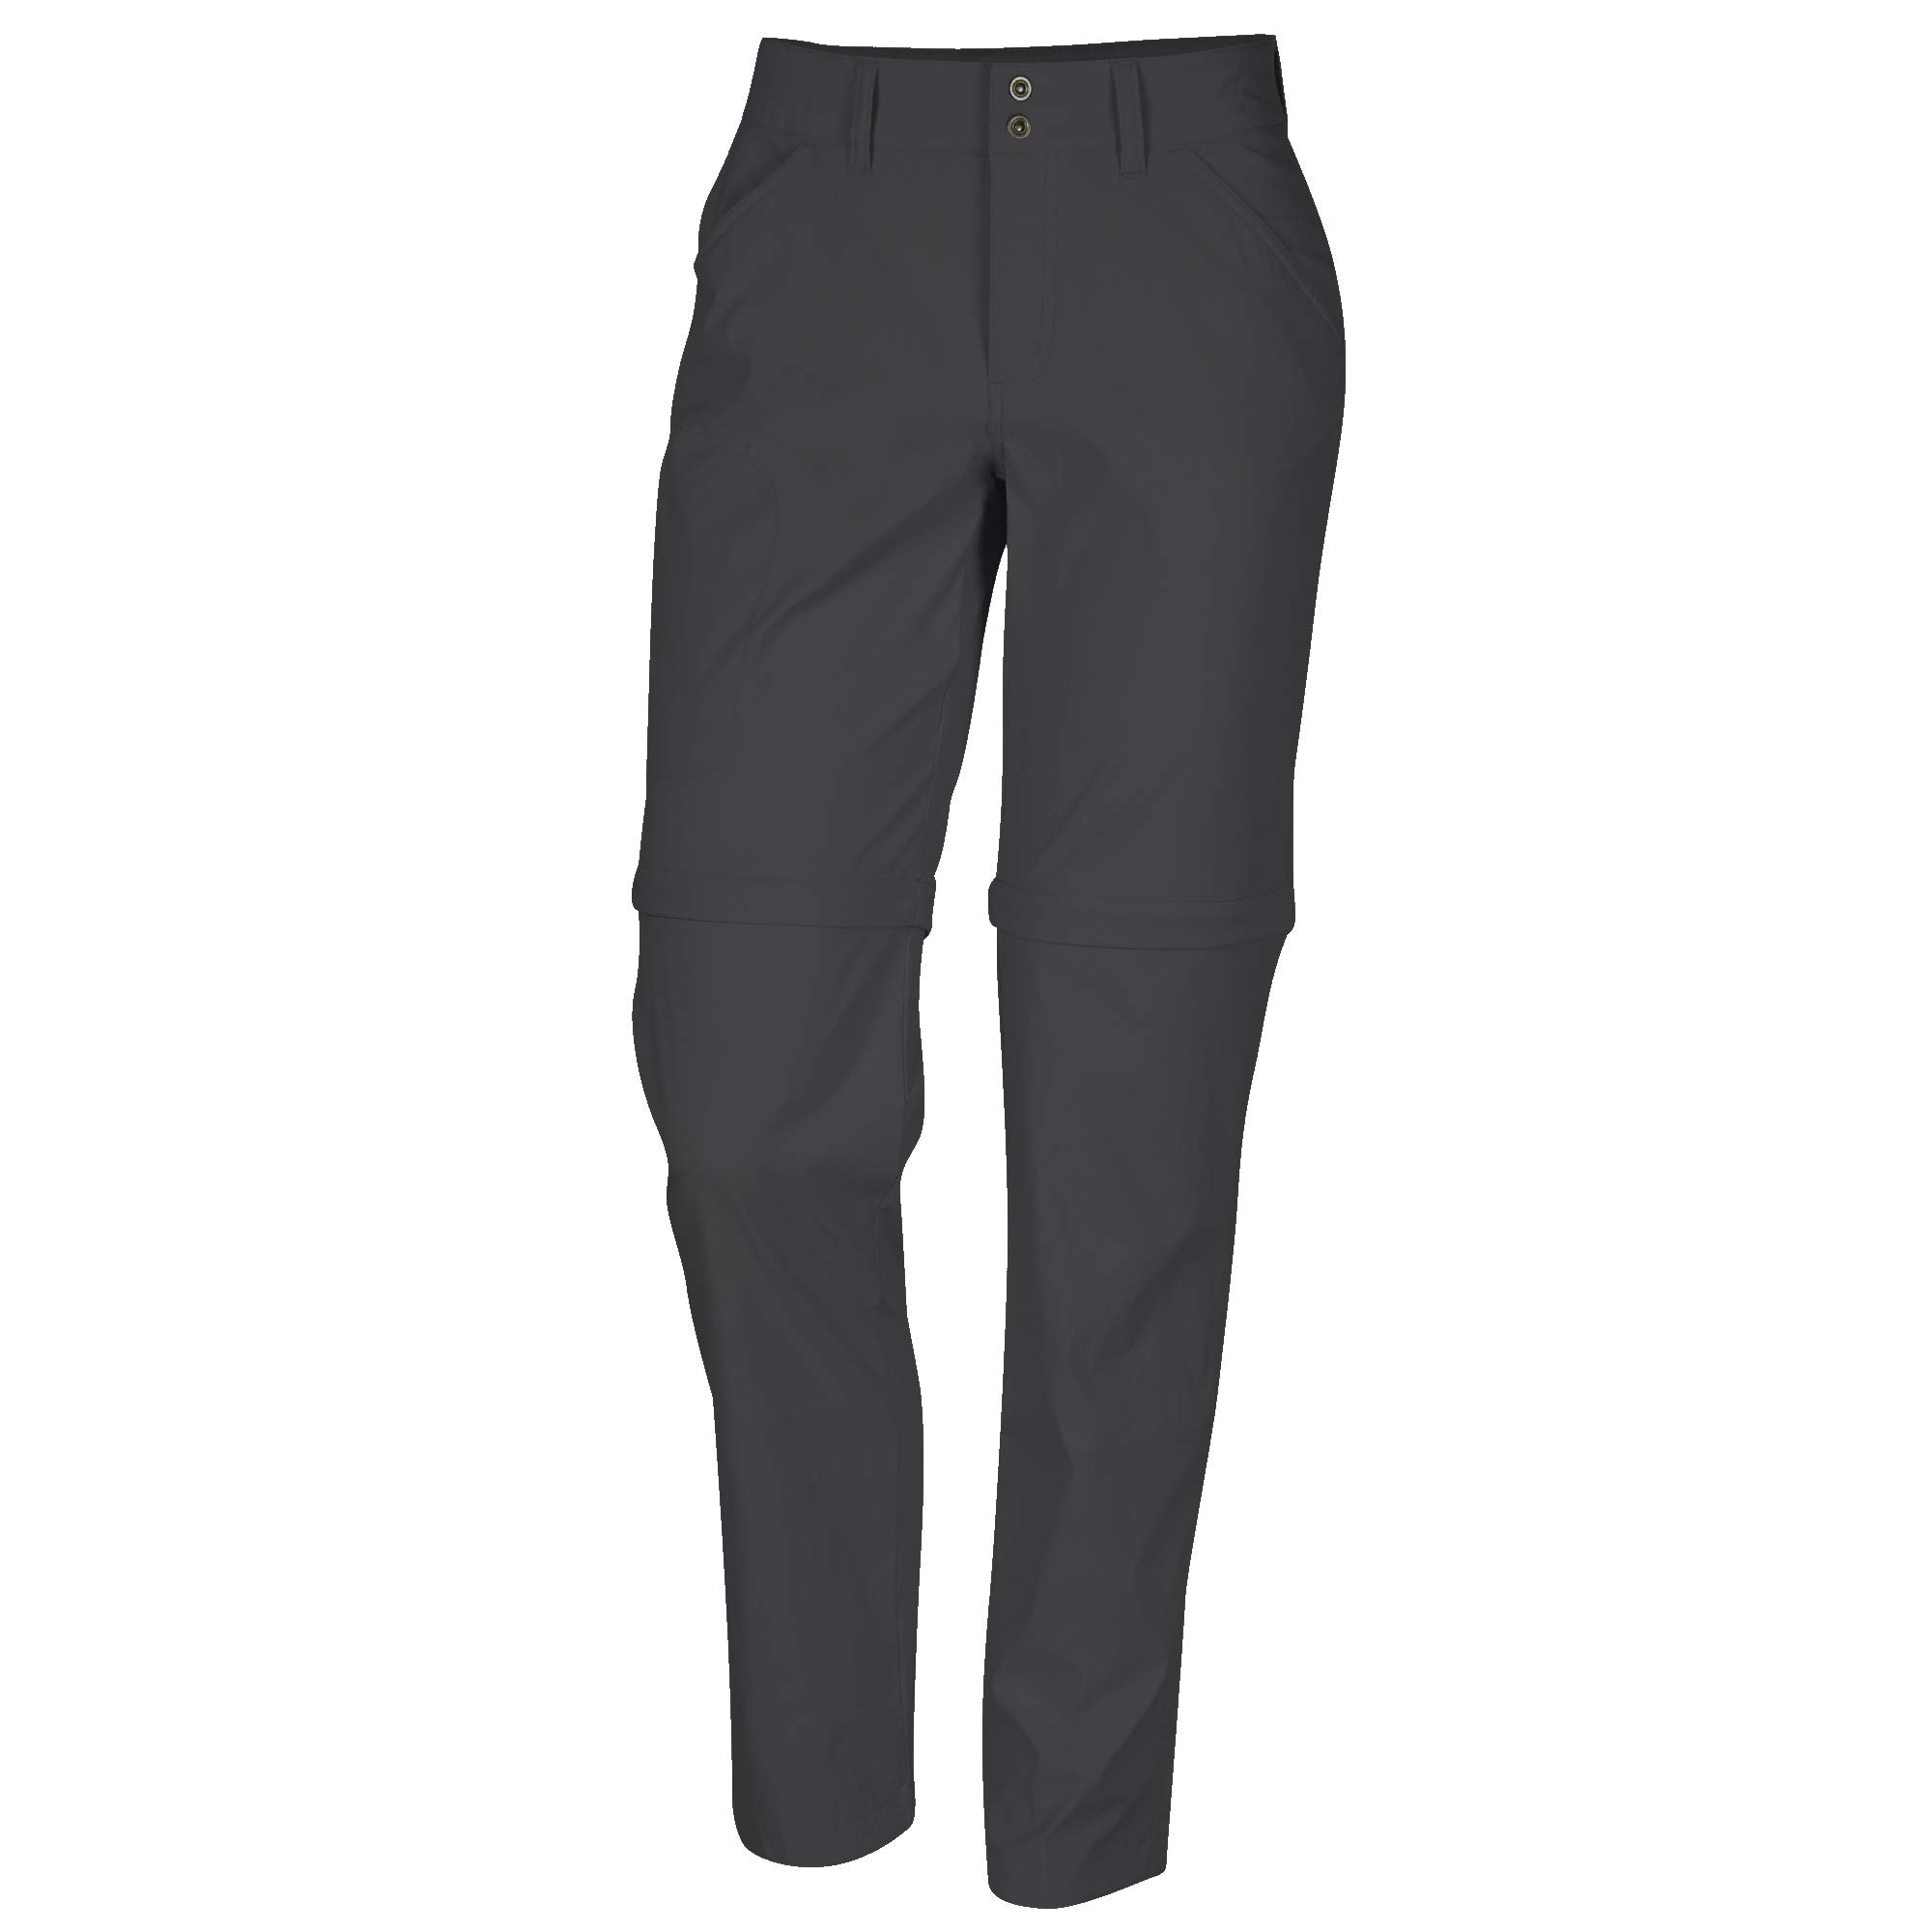 Ultimate Terrain Women's Trailhead Convertible Pant Anthracite (16W X Regularl) by Ultimate Terrain